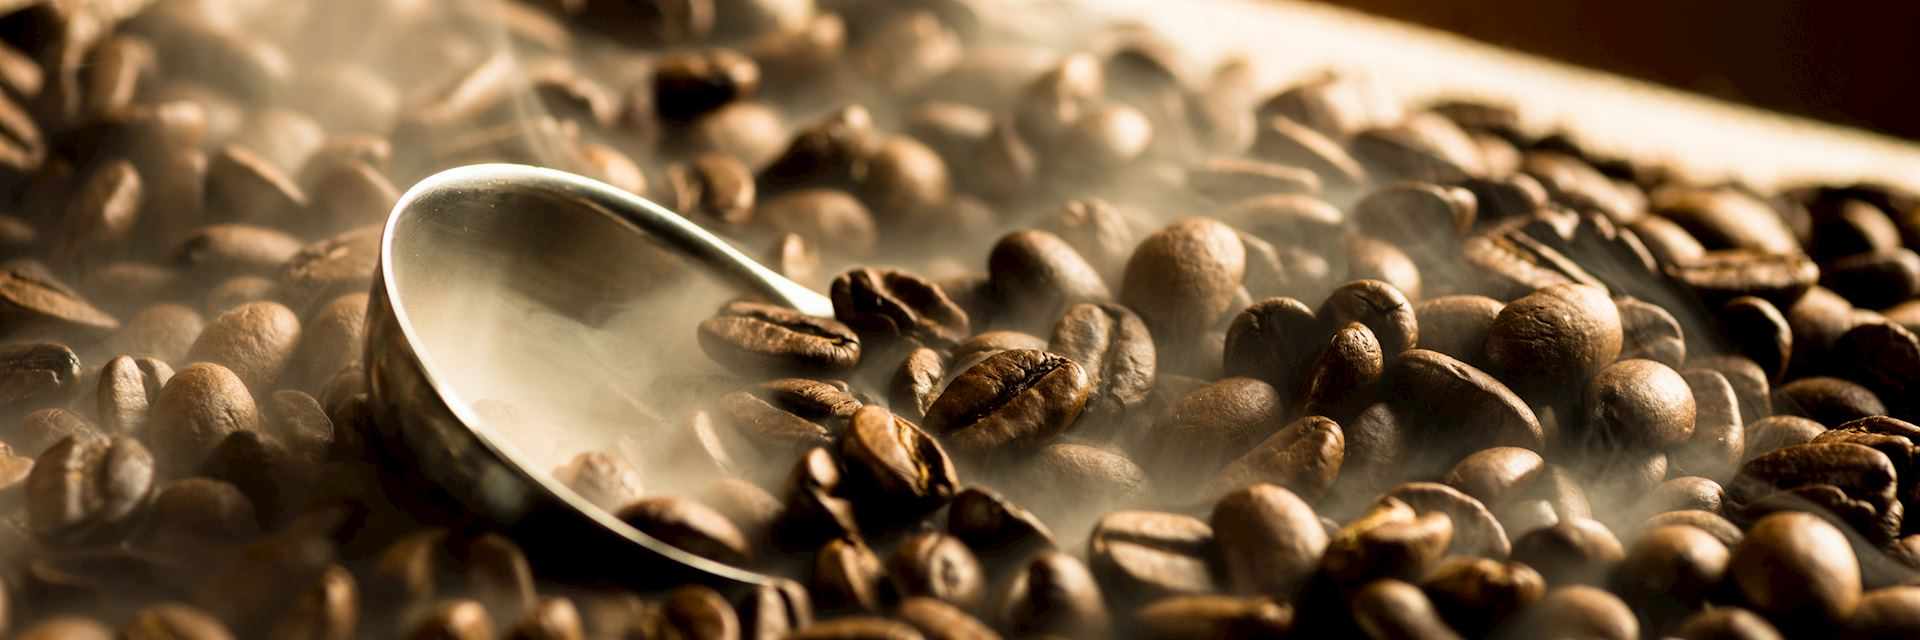 Roasting Colombian coffee beans